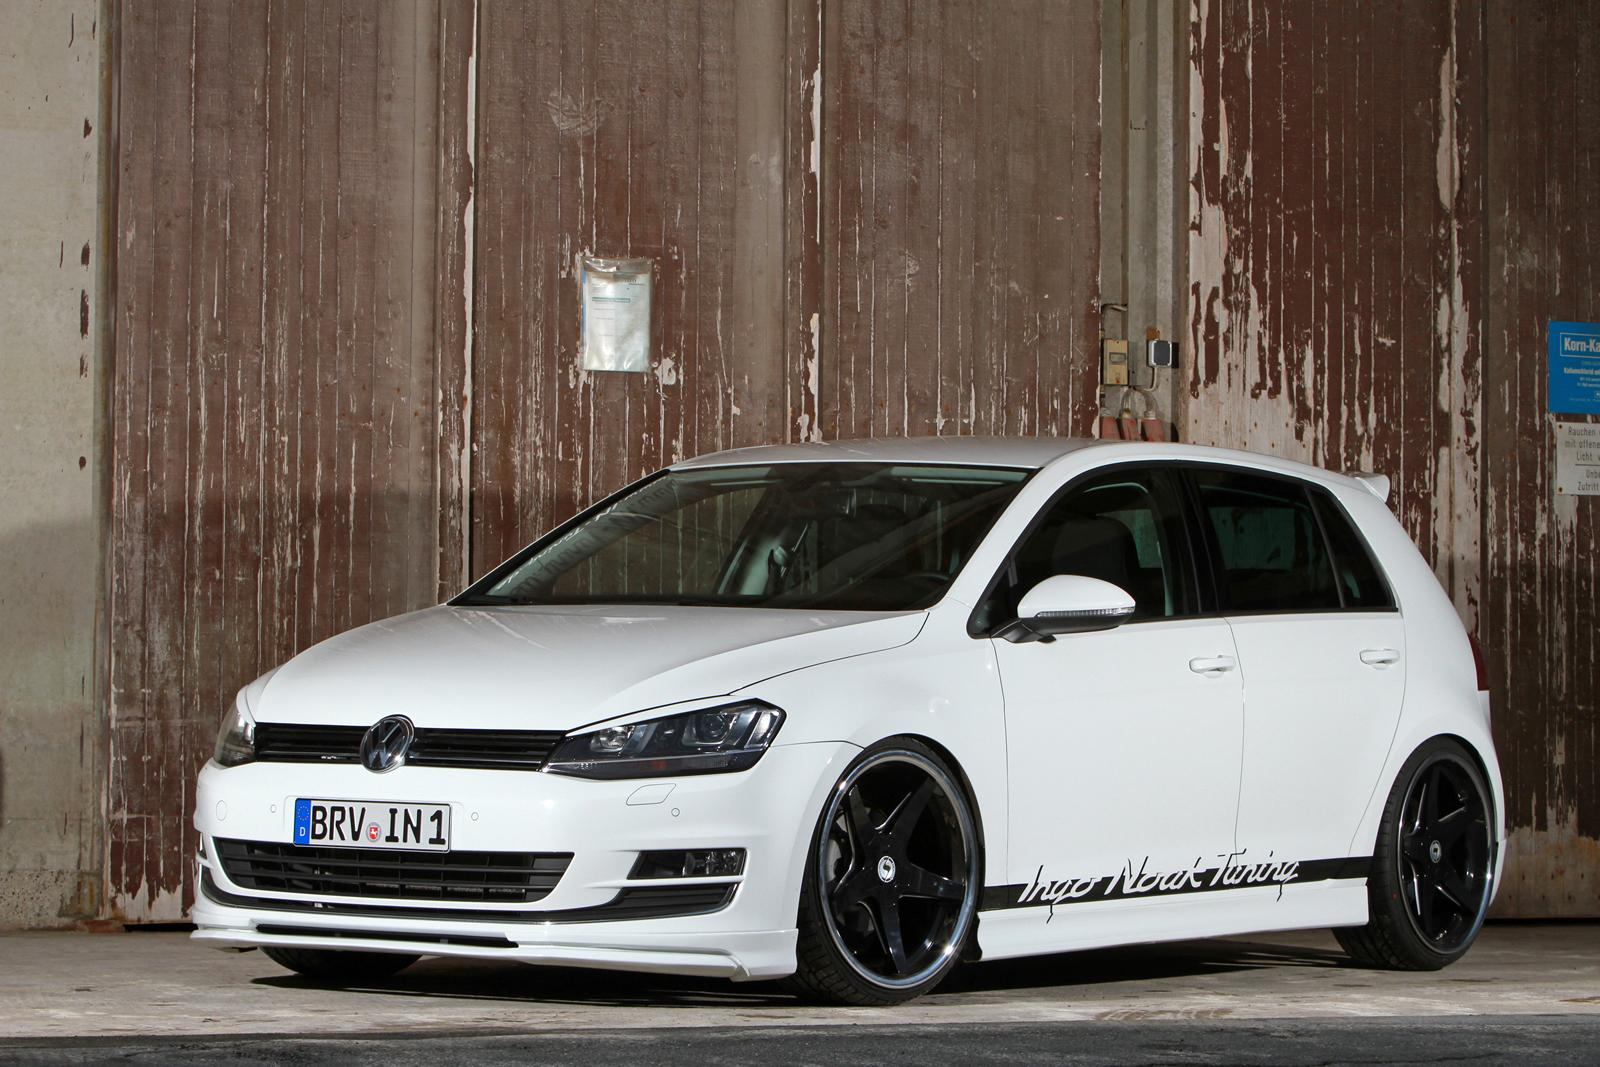 Ingo Noak Vw Golf 7 Tuning 1 Vw Tuning Mag